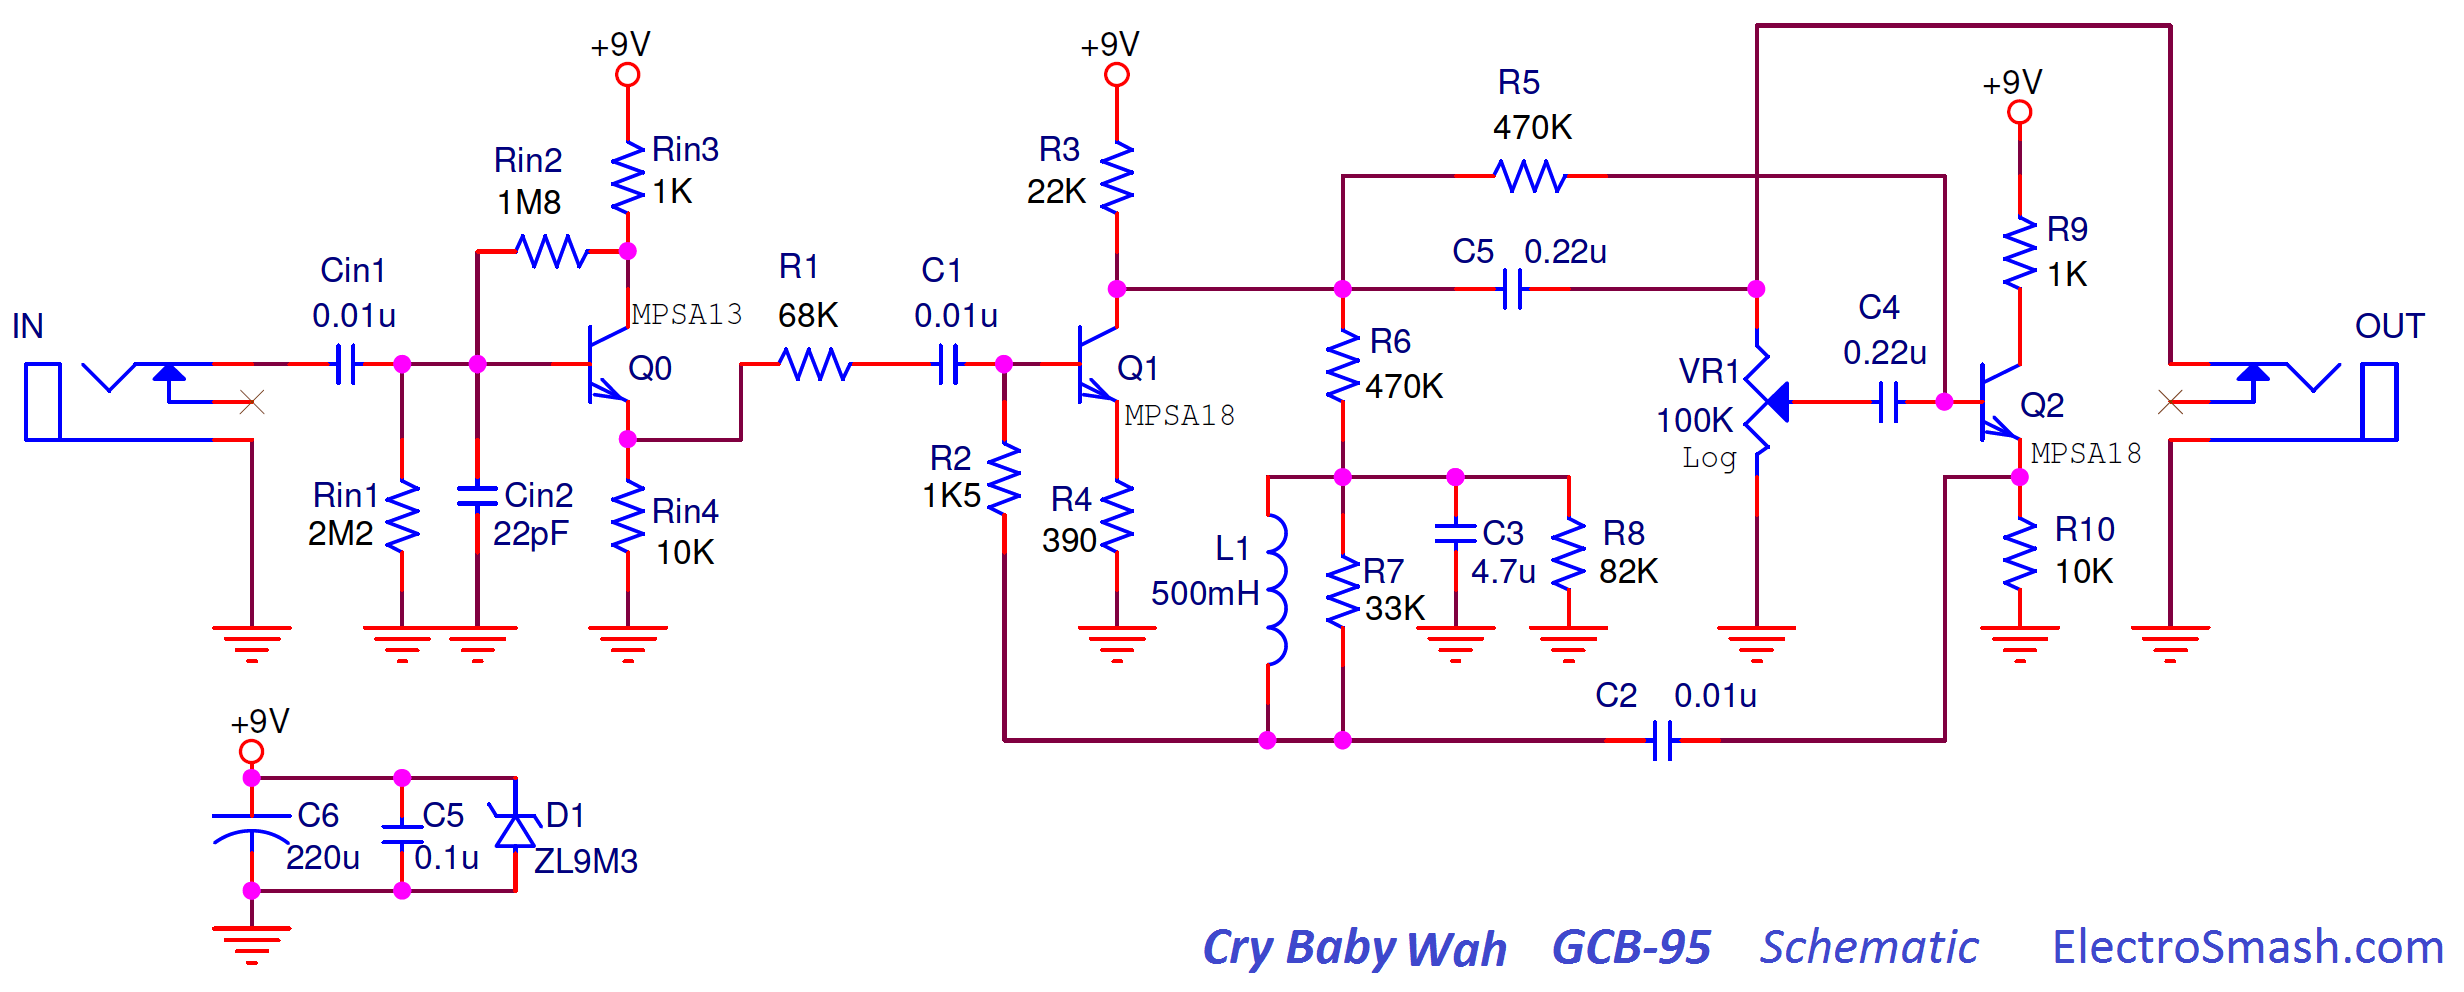 cry baby wah gcb 95 schematic electrosmash dunlop crybaby gcb 95 cicuit analysis crybaby gcb-95 wiring diagram at nearapp.co